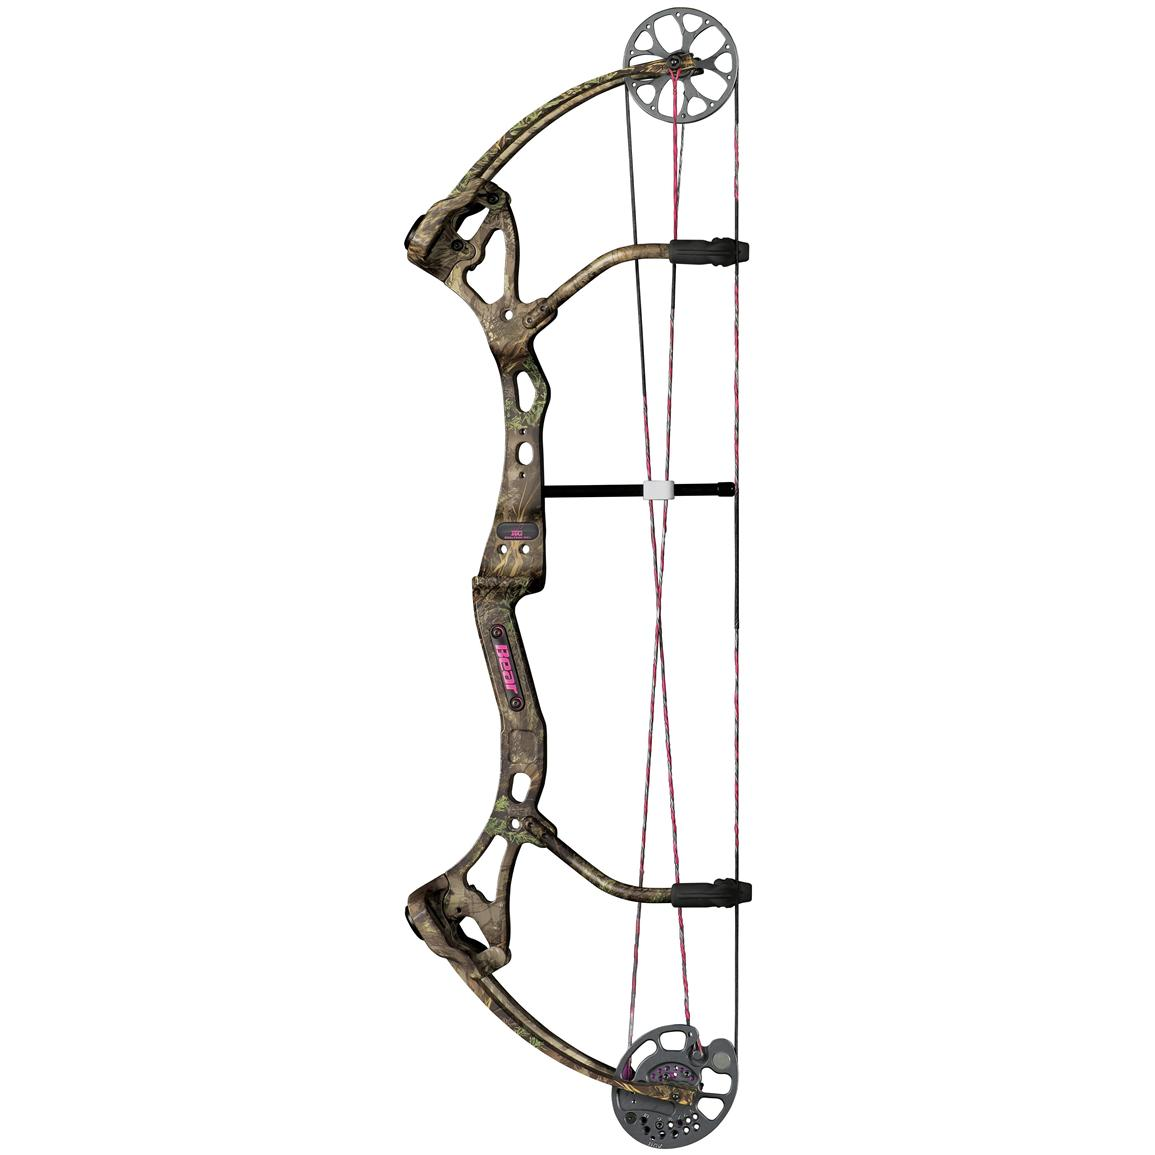 Compound bow and arrow clipart.